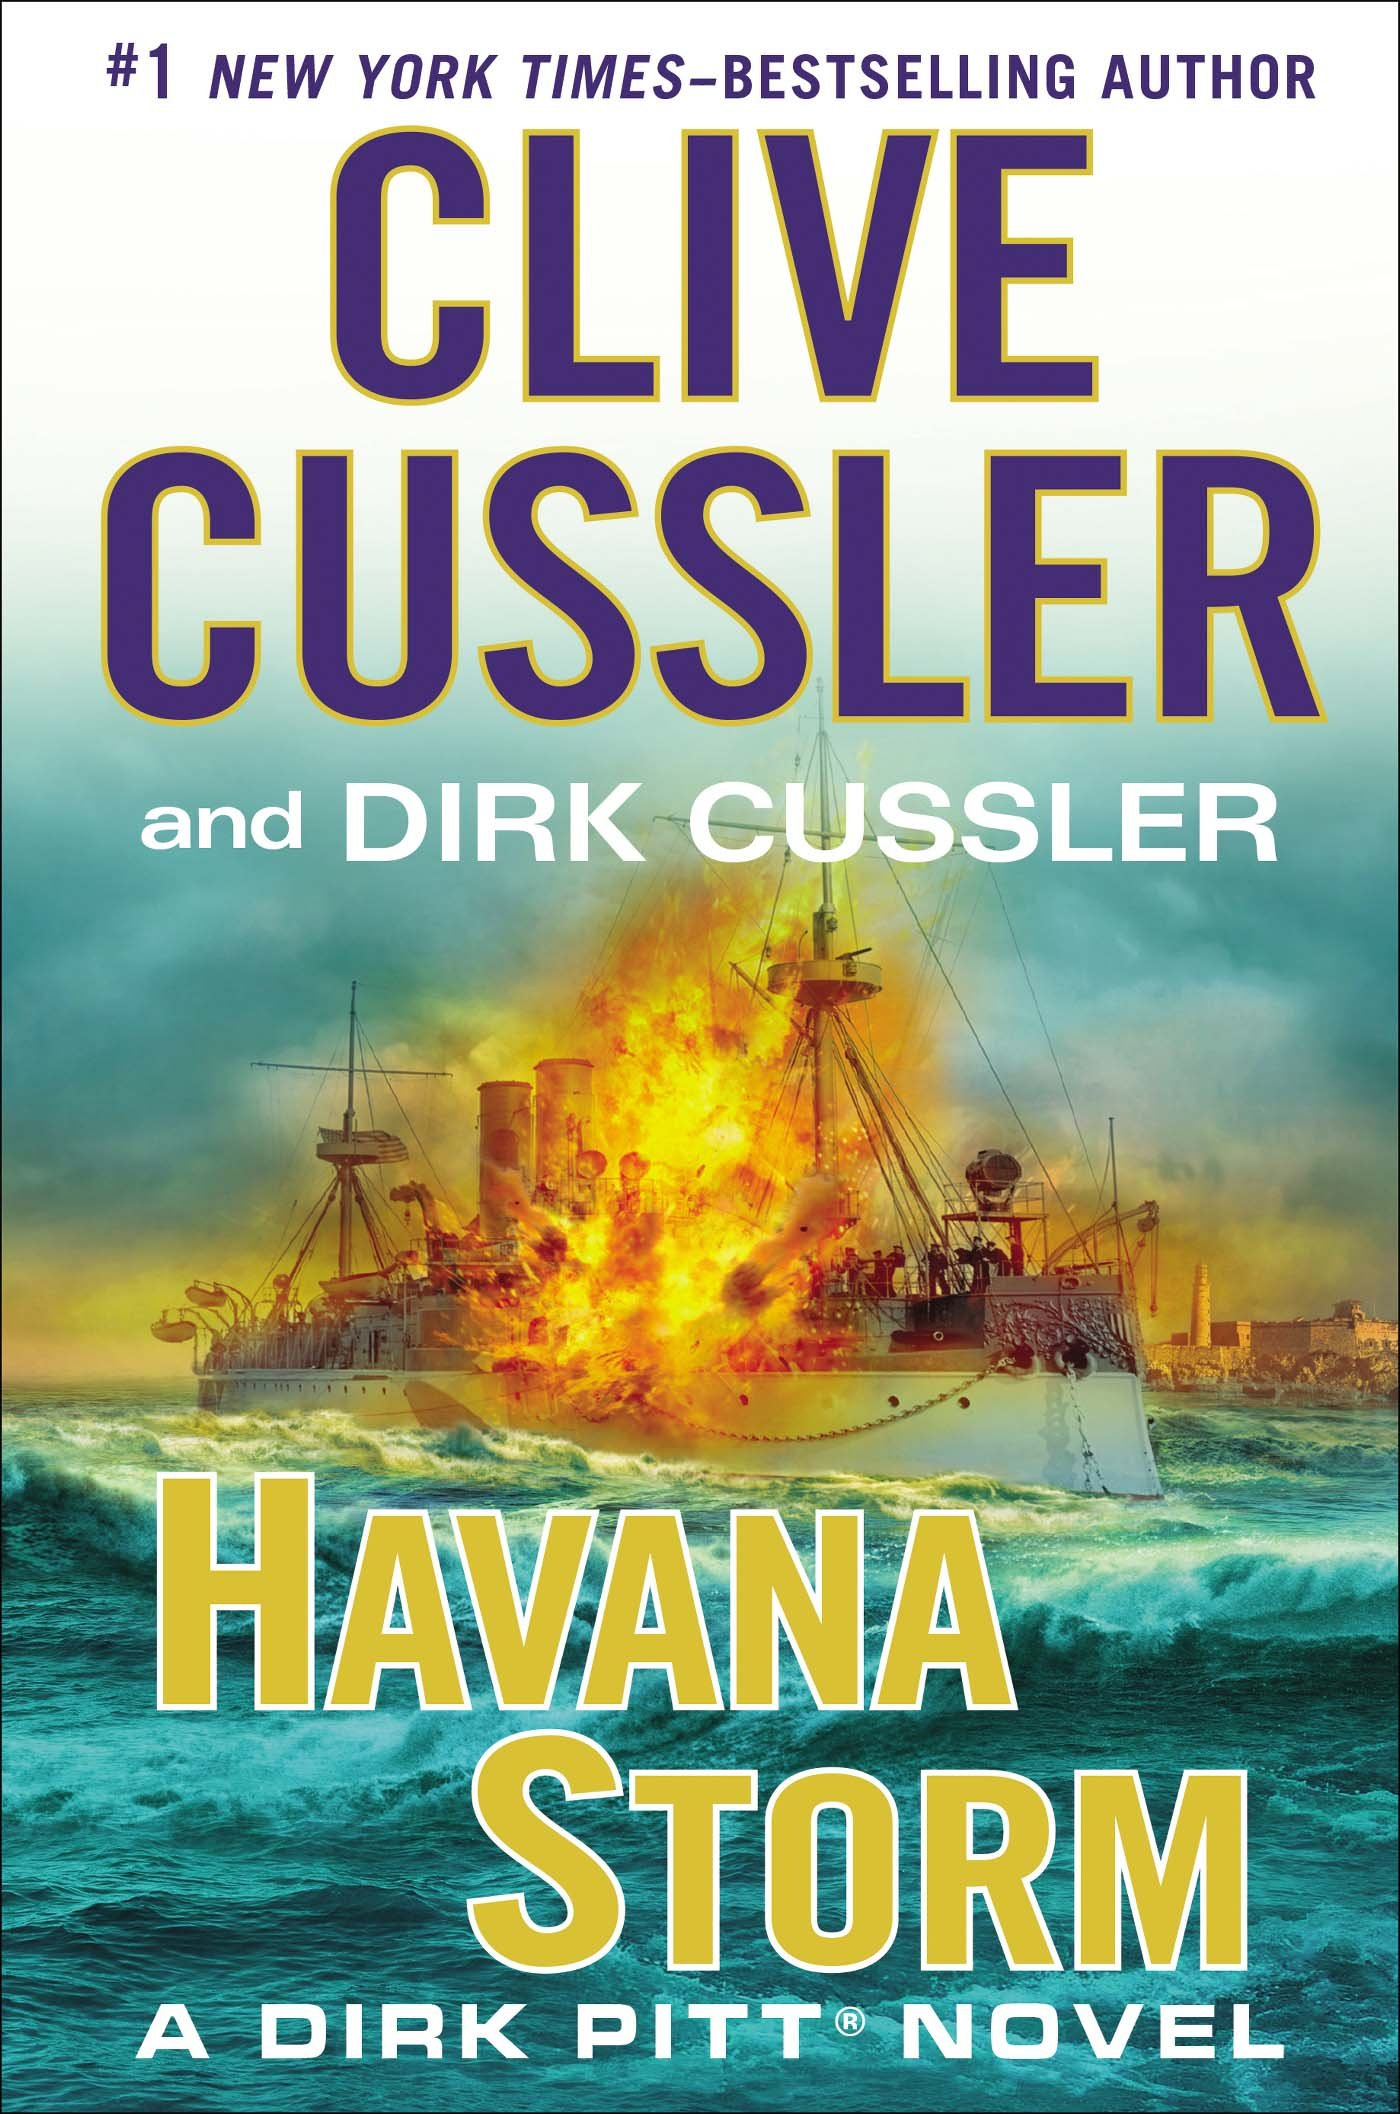 Havana Storm by Clive and Dirk Cussler - Hibbing Public Library